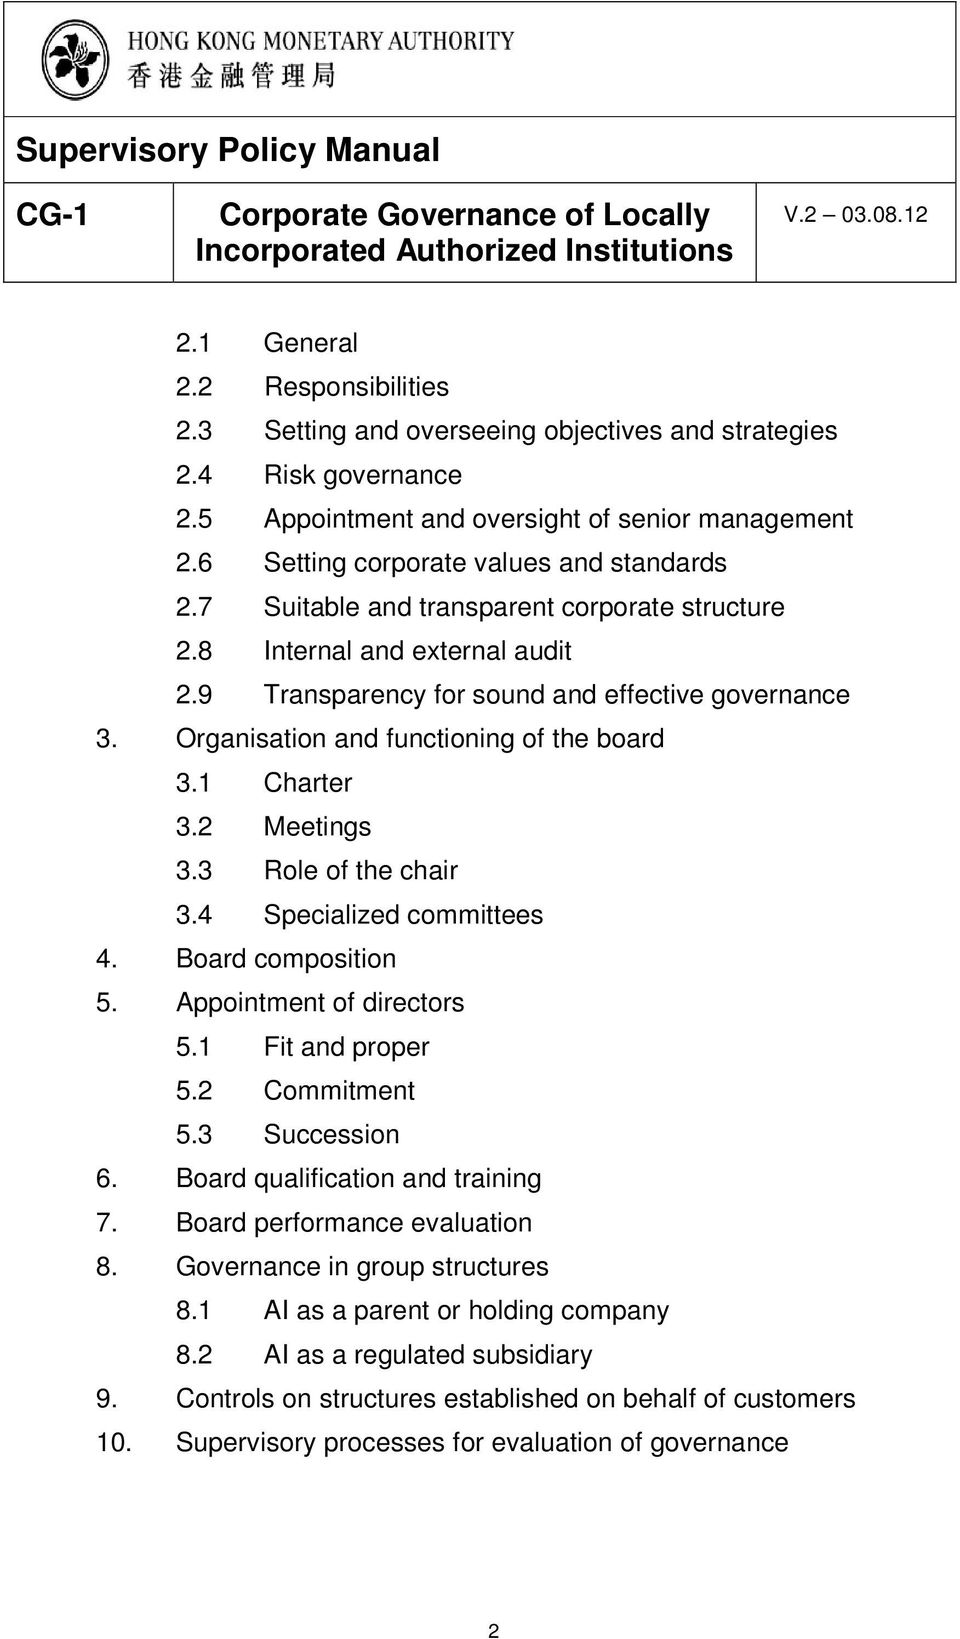 Organisation and functioning of the board 3.1 Charter 3.2 Meetings 3.3 Role of the chair 3.4 Specialized committees 4. Board composition 5. Appointment of directors 5.1 Fit and proper 5.